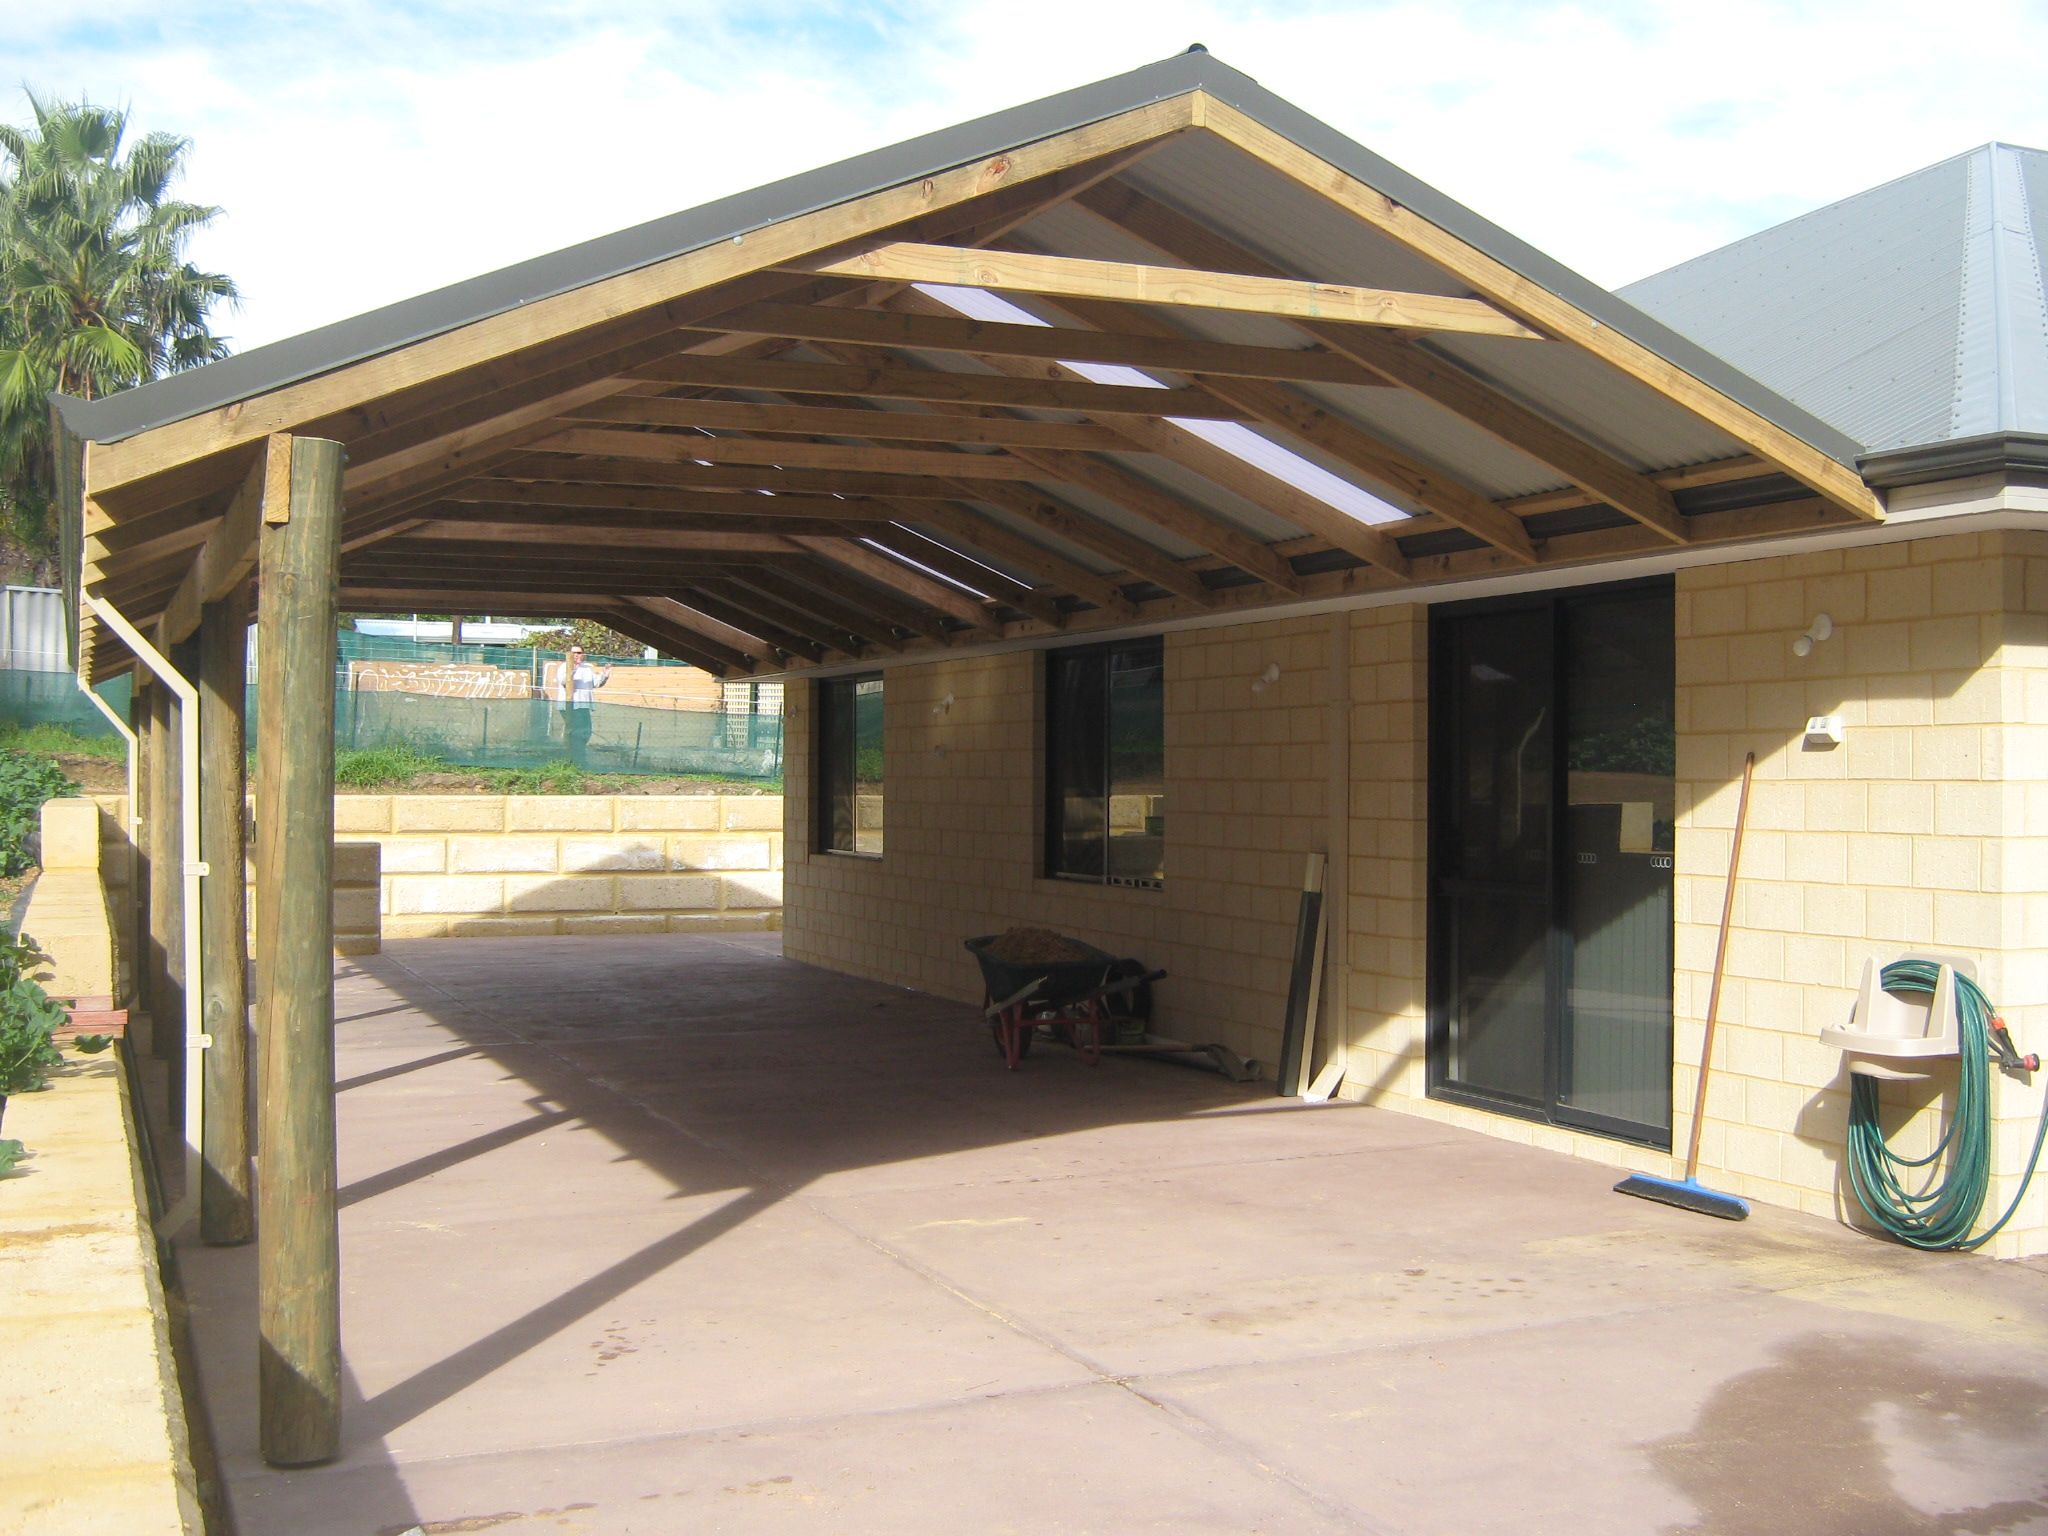 Save This Exteriors : Metal Roof Panels Patio Covers Insulated Patio Roof  Panels Patio Roof Designs With Patio Cover Roof Design Ideas Patio Roof  Plansu201a ...